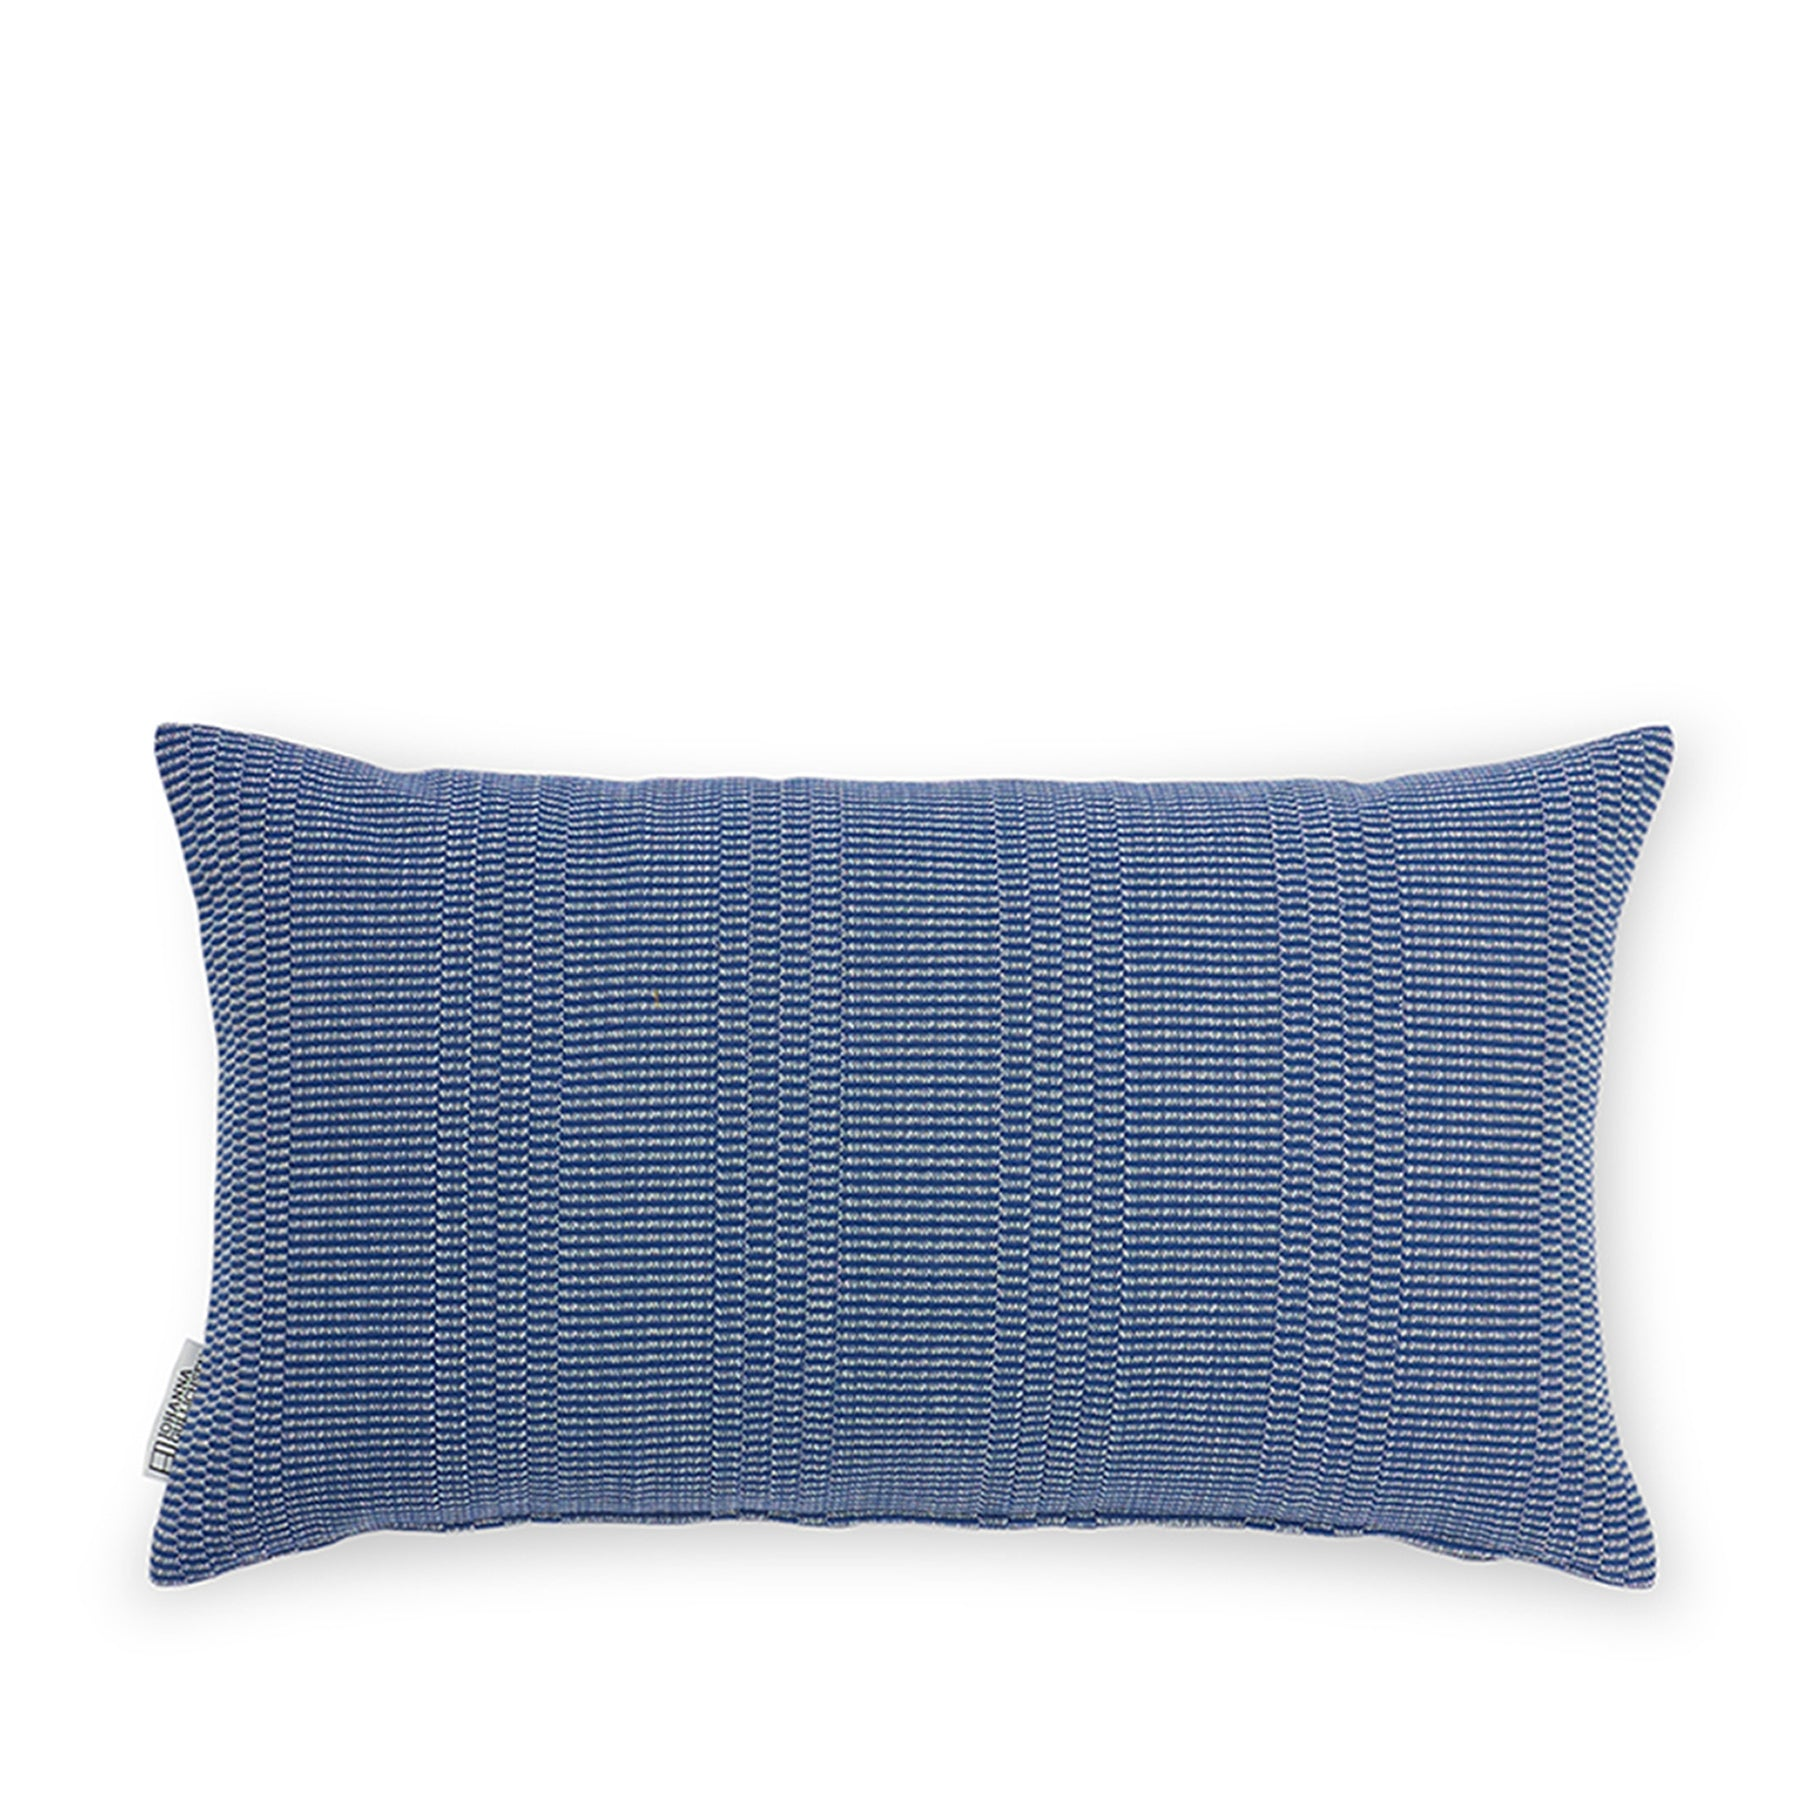 Eos Pillow in Blue Zoom Image 1